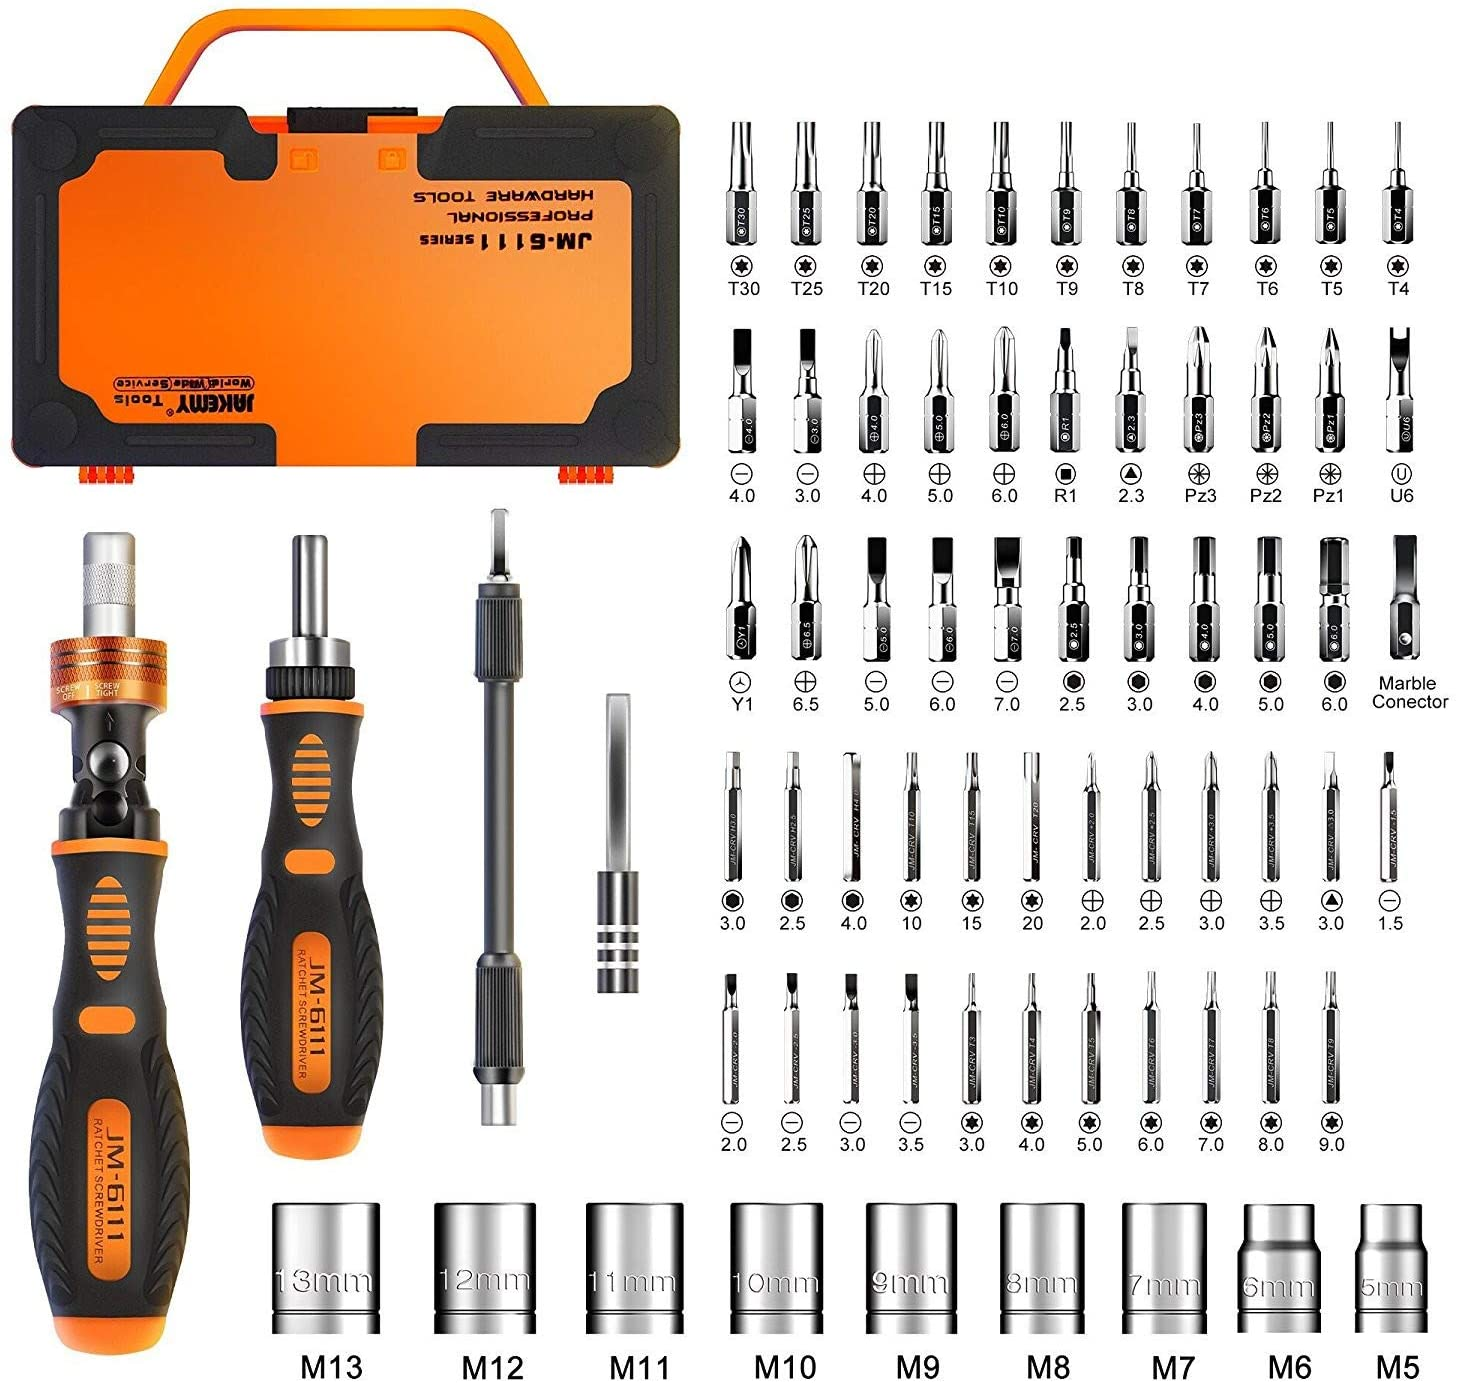 Jakemy Rotatable Magnetic Kit 69-In-1 Household Repair Ratcheting Screwdriver